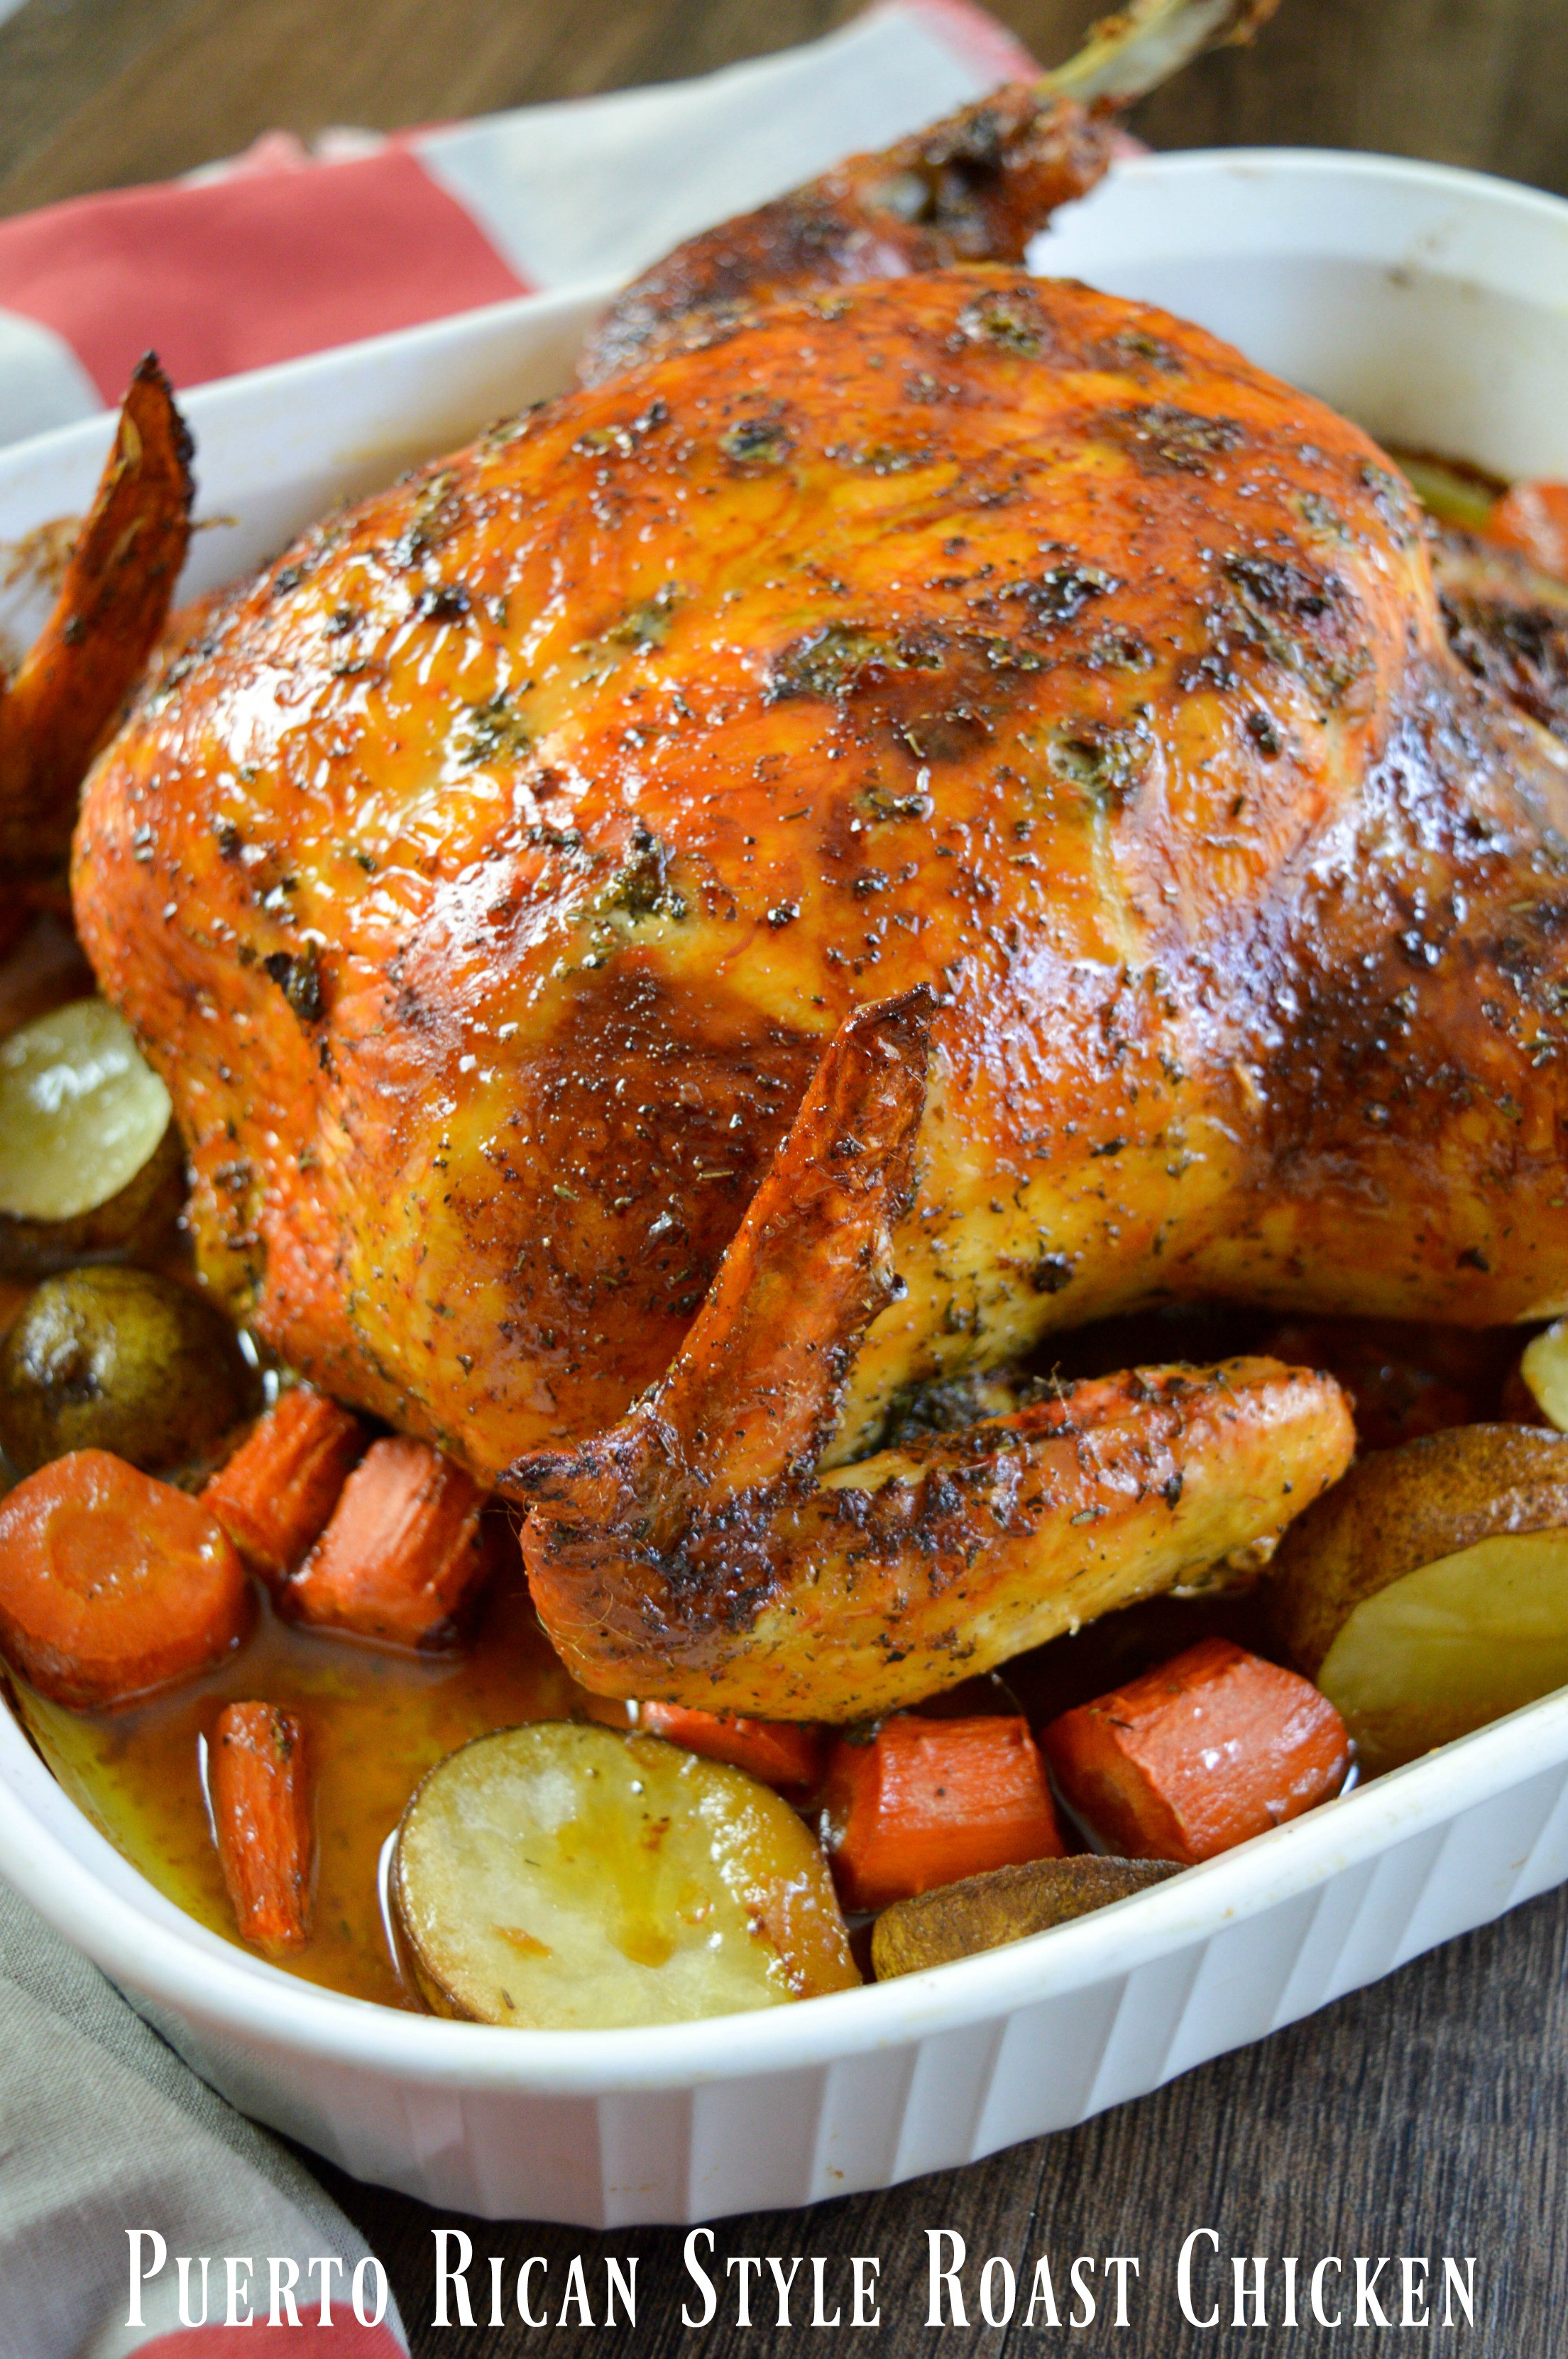 Stuffed Whole Chicken  Puerto Rican Style Whole Roasted Chicken Recipe